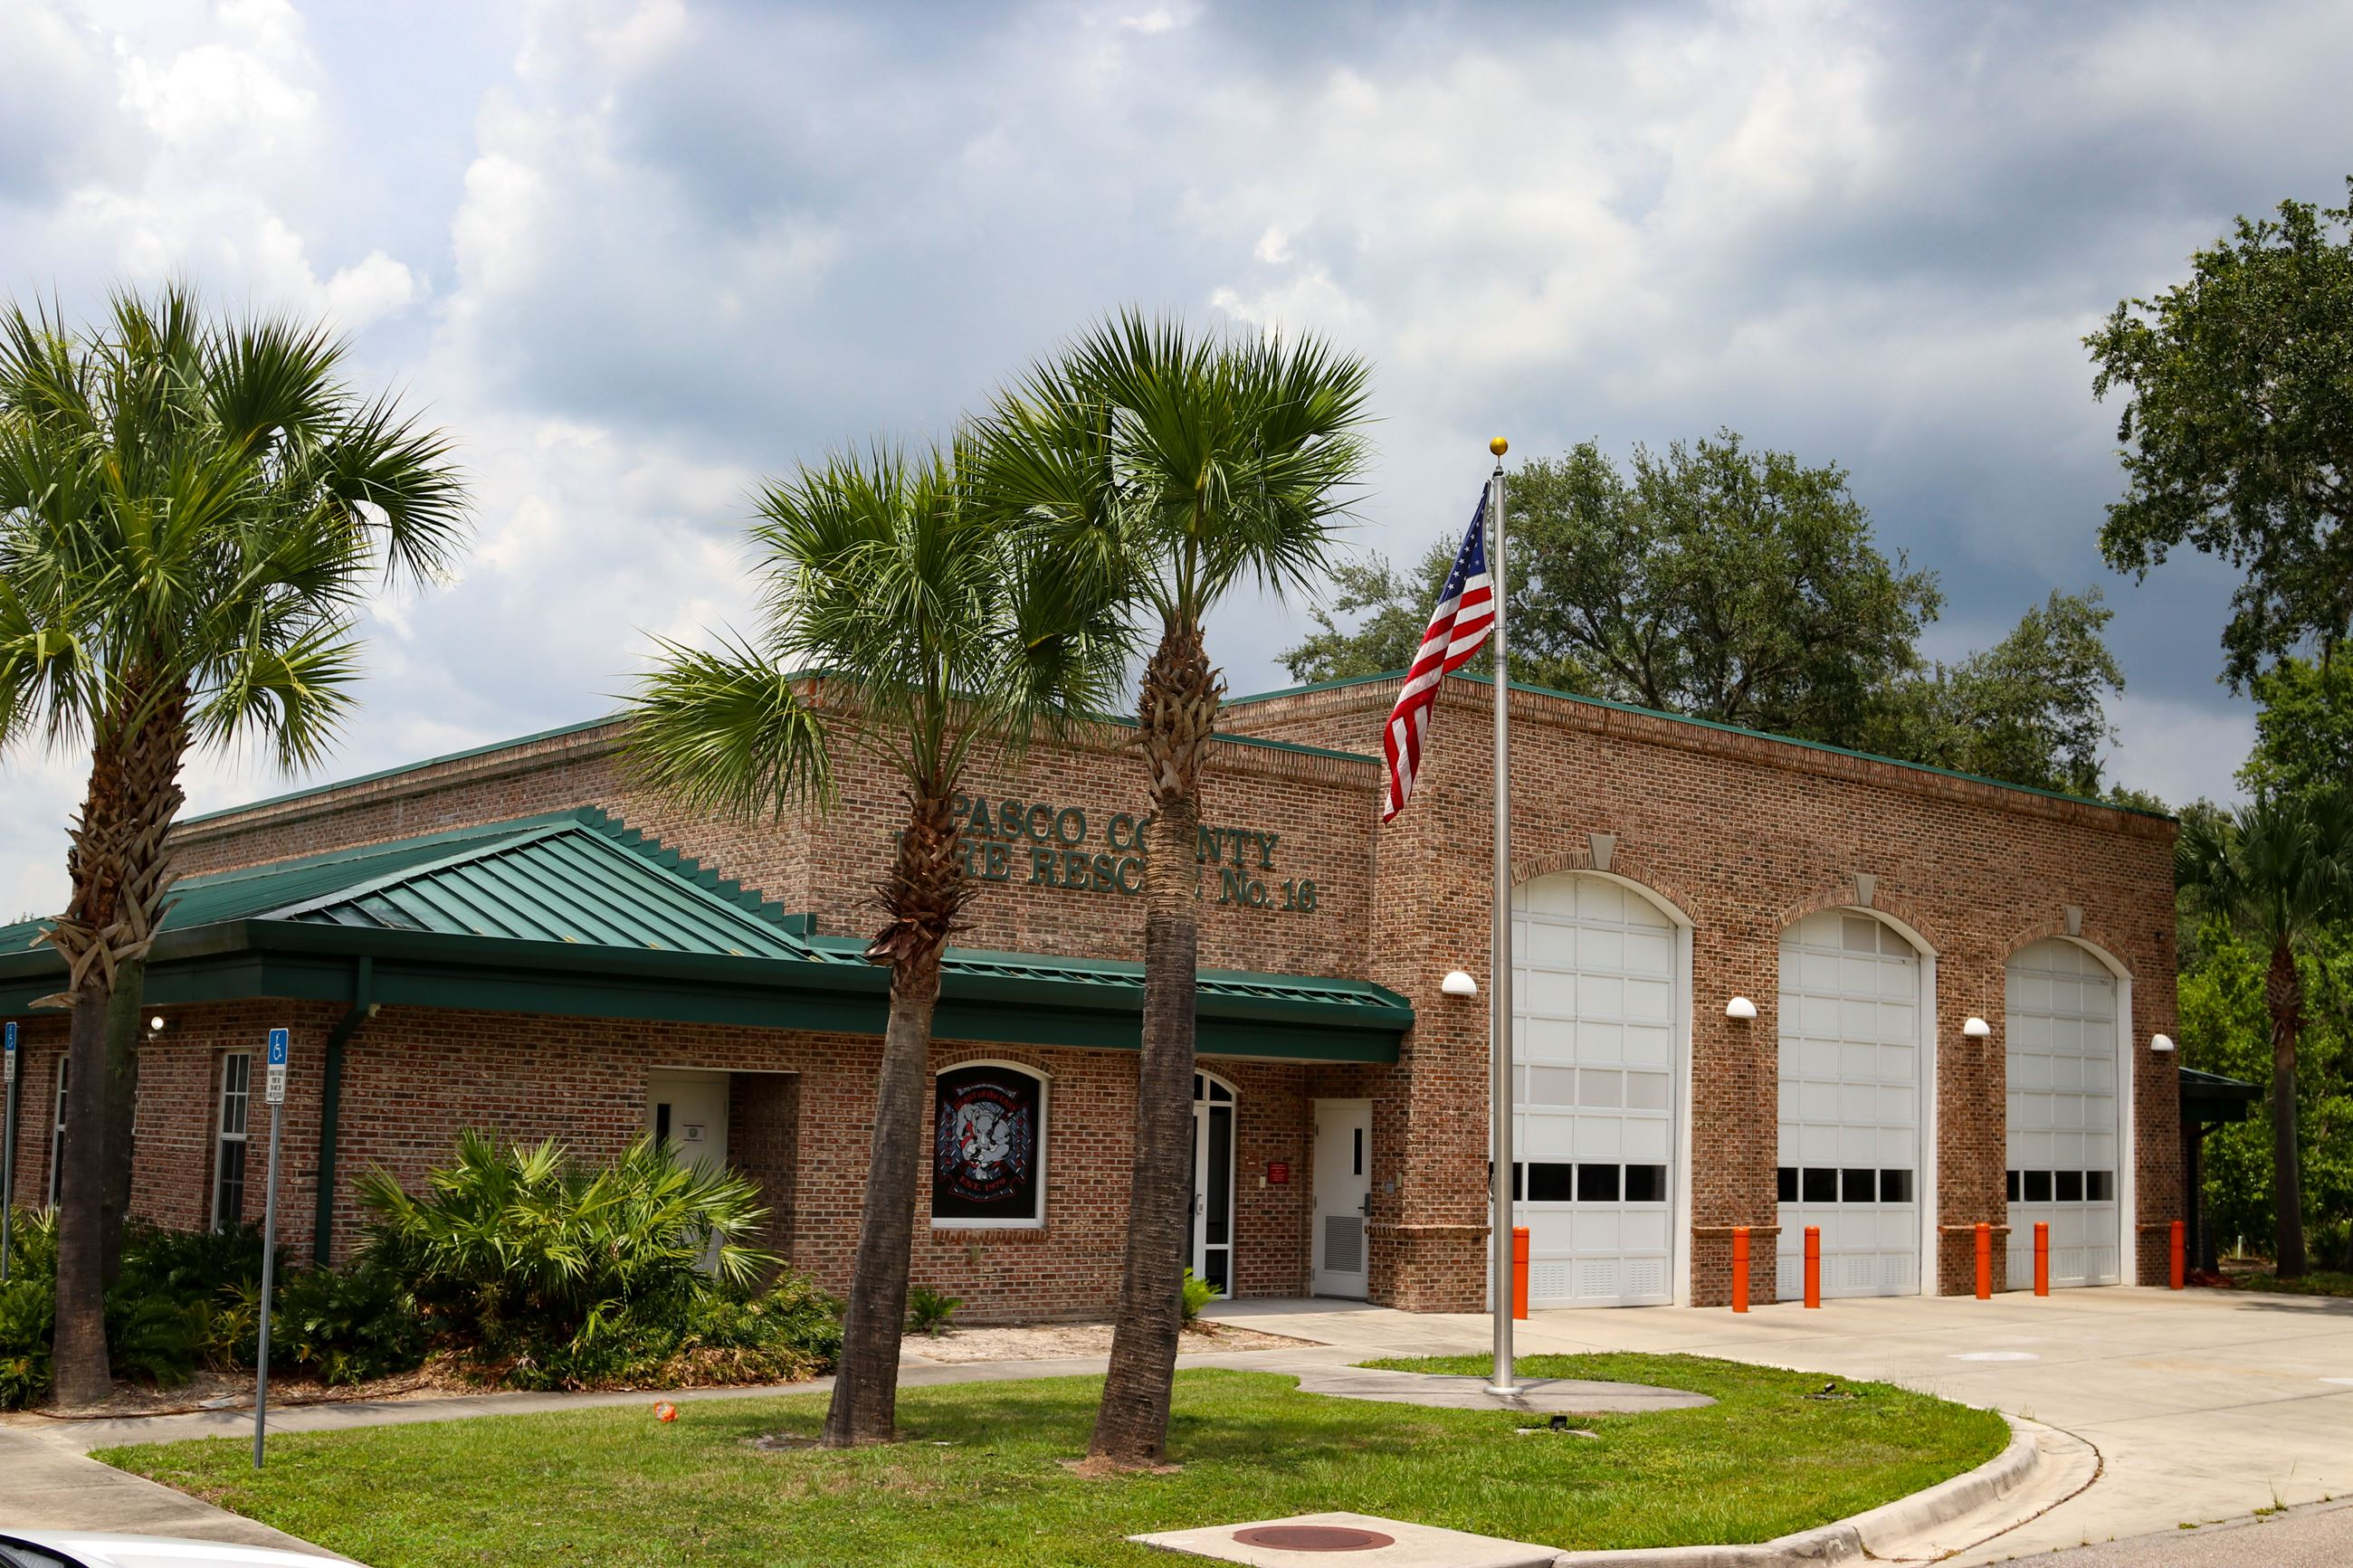 Station 16 front